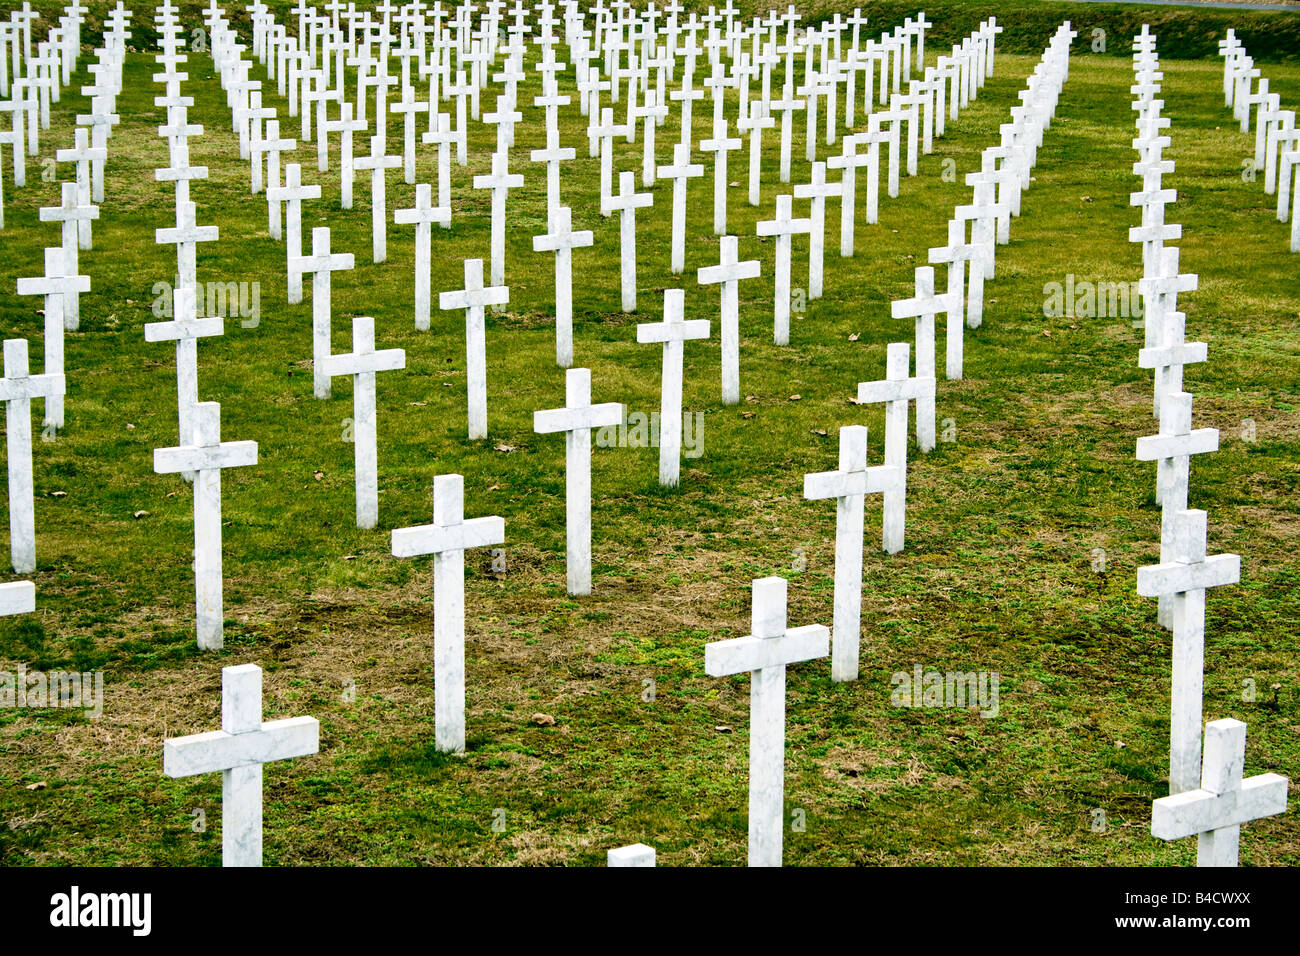 CROATIA, VUKOVAR. Cemetary in Vukovar of the Croatian soldiers killed in the defence of the city. - Stock Image